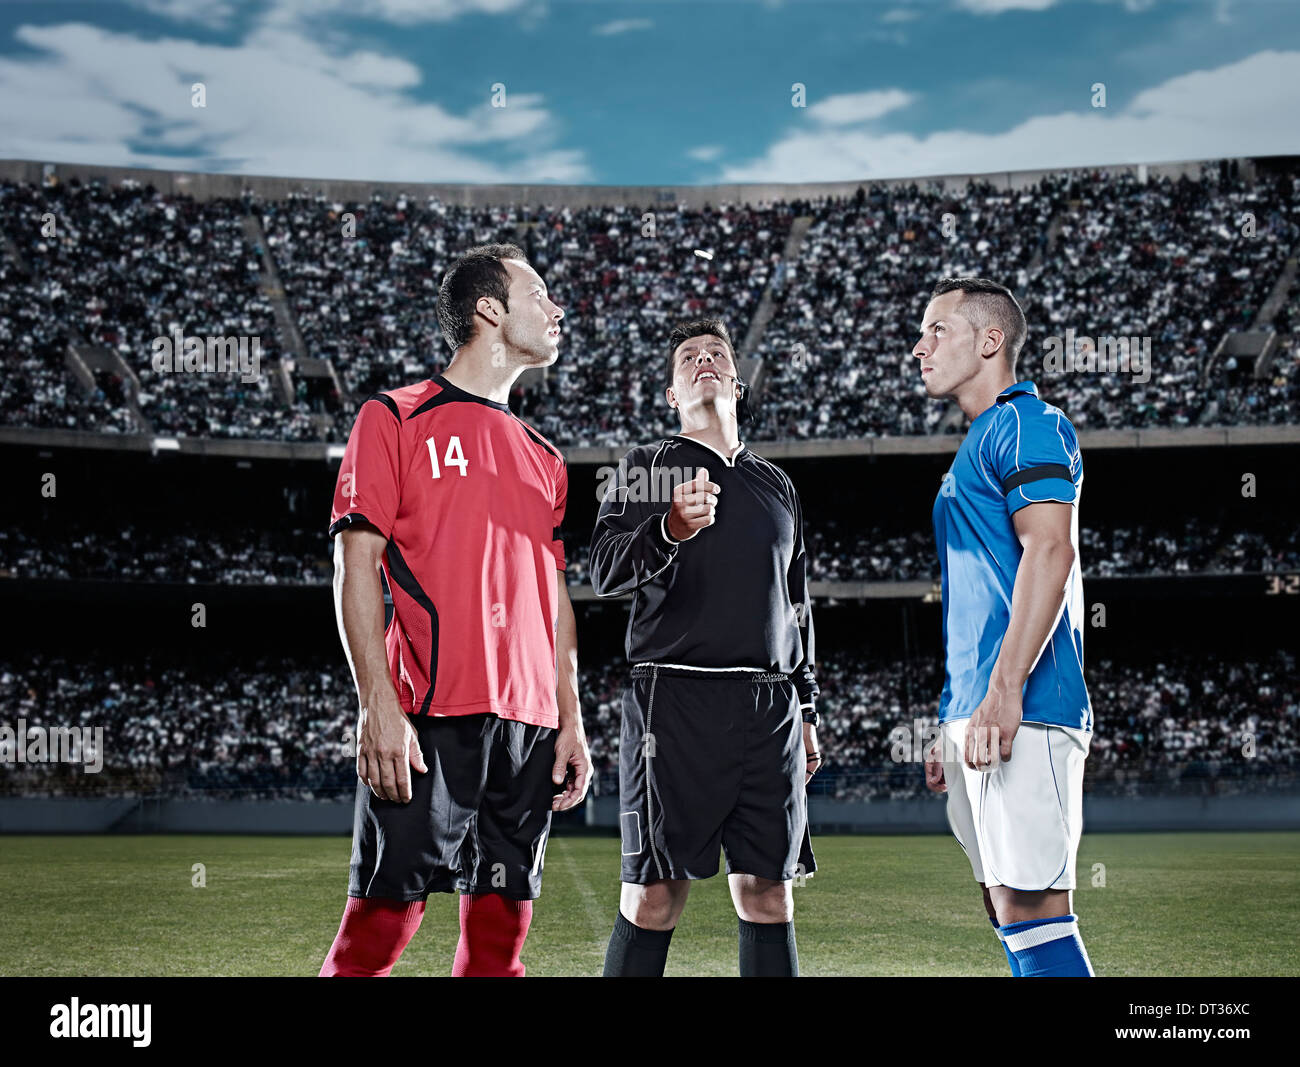 Referee tossing coin in soccer game - Stock Image